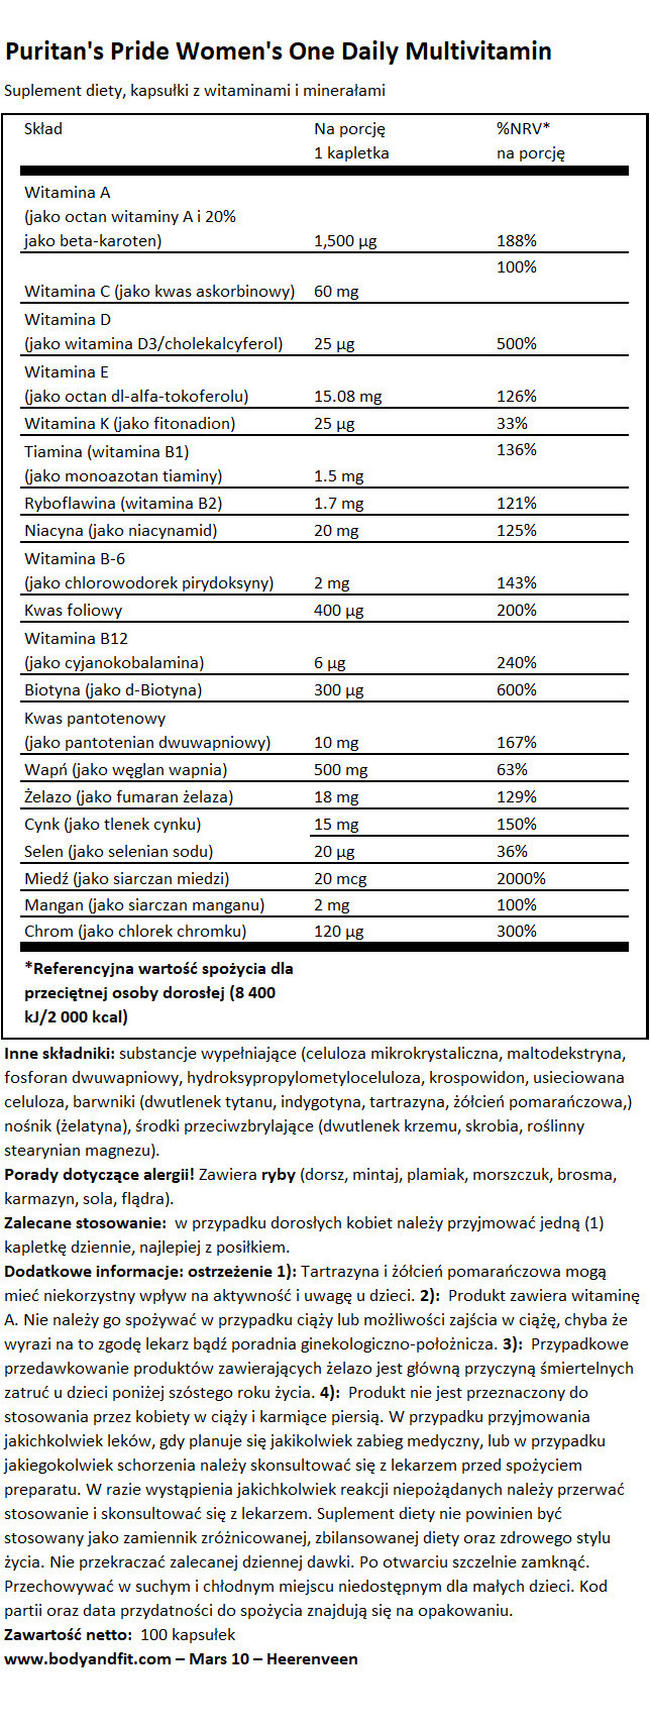 Women's One Daily Multivitamin Nutritional Information 1